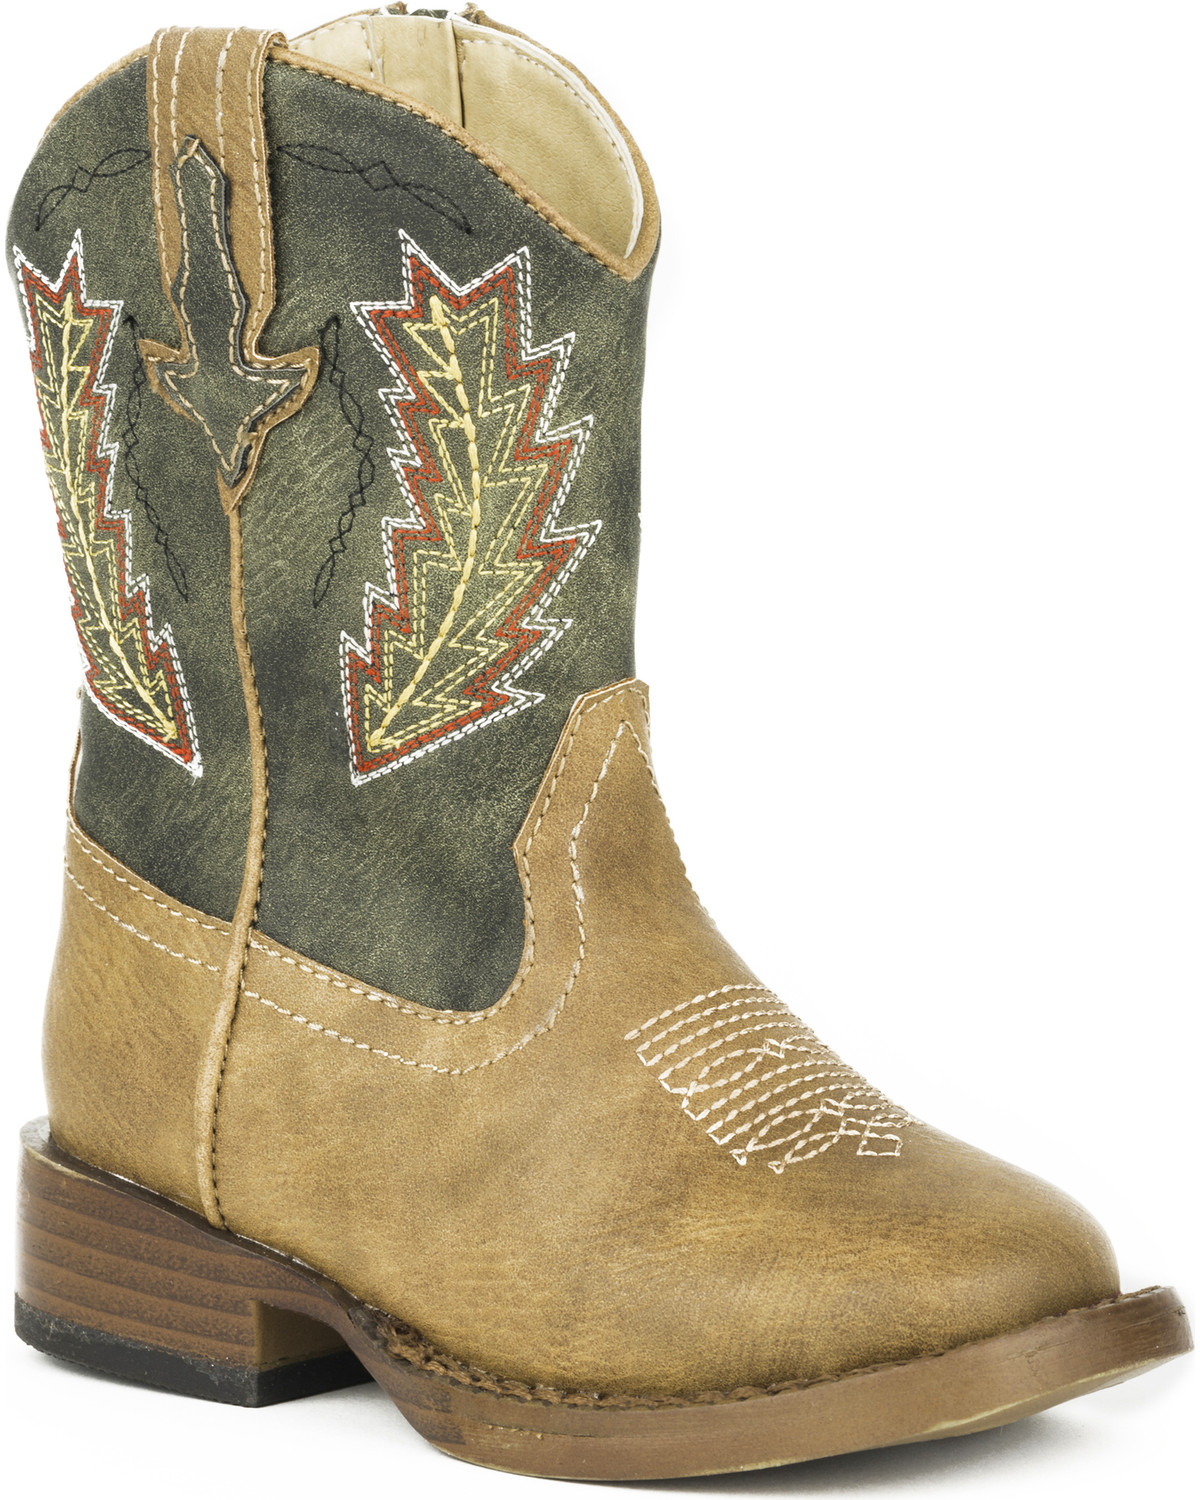 Shop Boot Barn's large selection of Kids' Western Boots from brands including: Smoky Mountain, Old West, Ariat, Justin, and more! All orders over $75 ship free! Lacey - Open Until 8pm. Lacey Marvin Road NE Lacey Washington ()